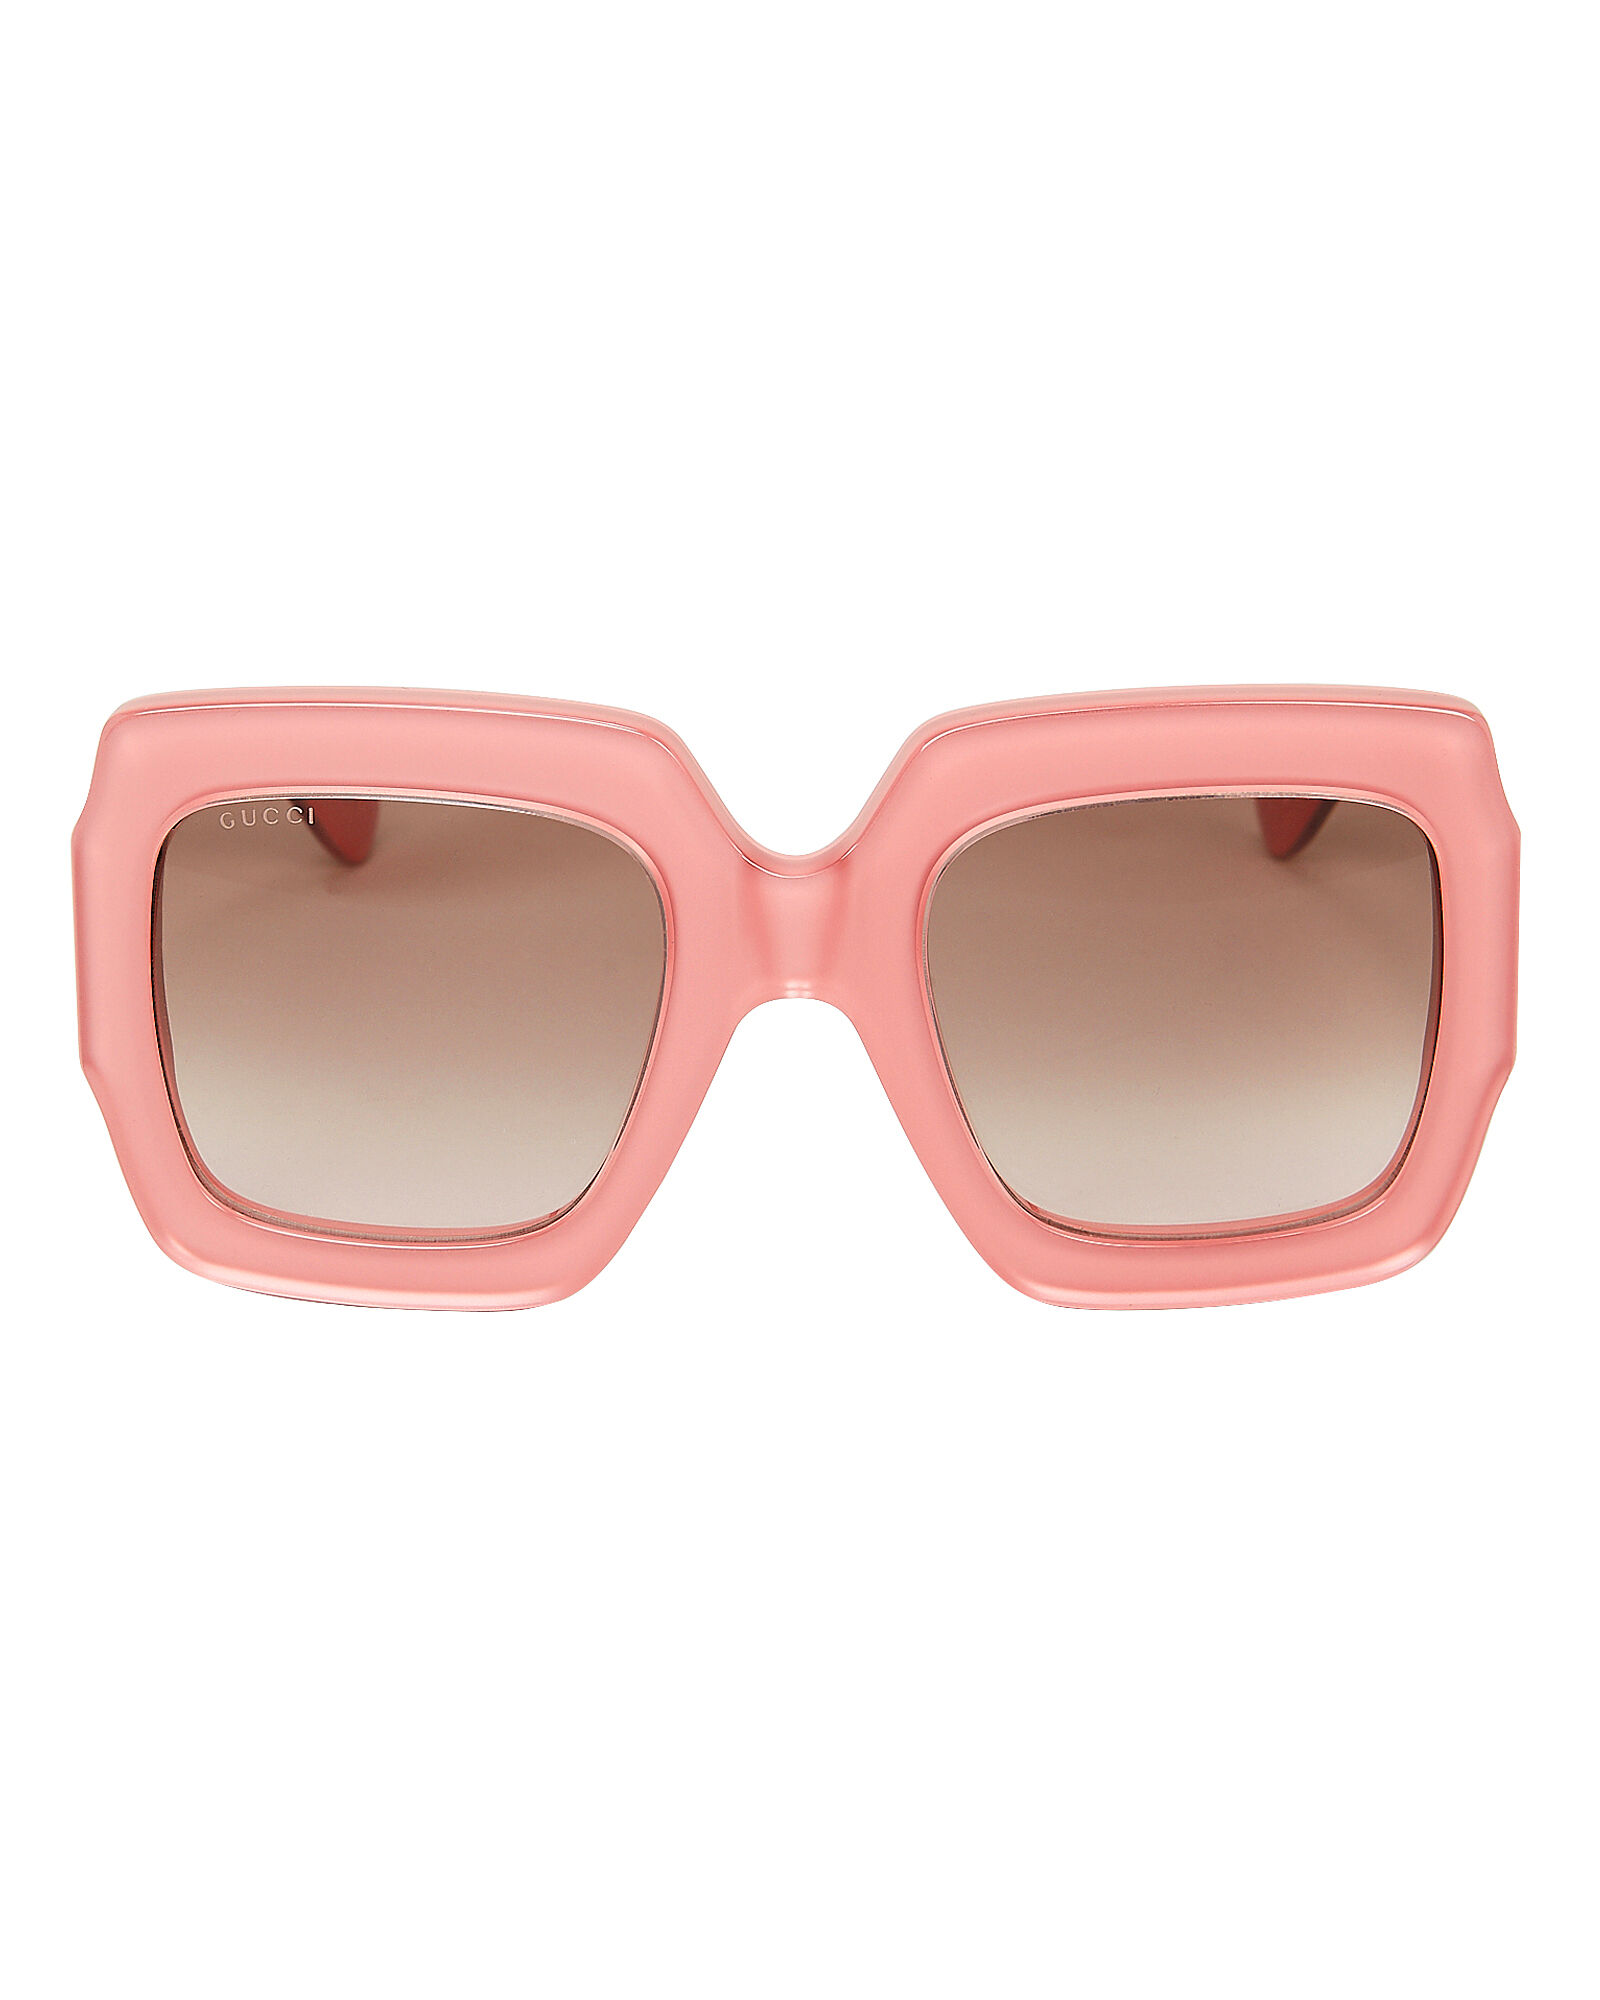 Oversized Pink Rectangle Sunglasses, PINK, hi-res